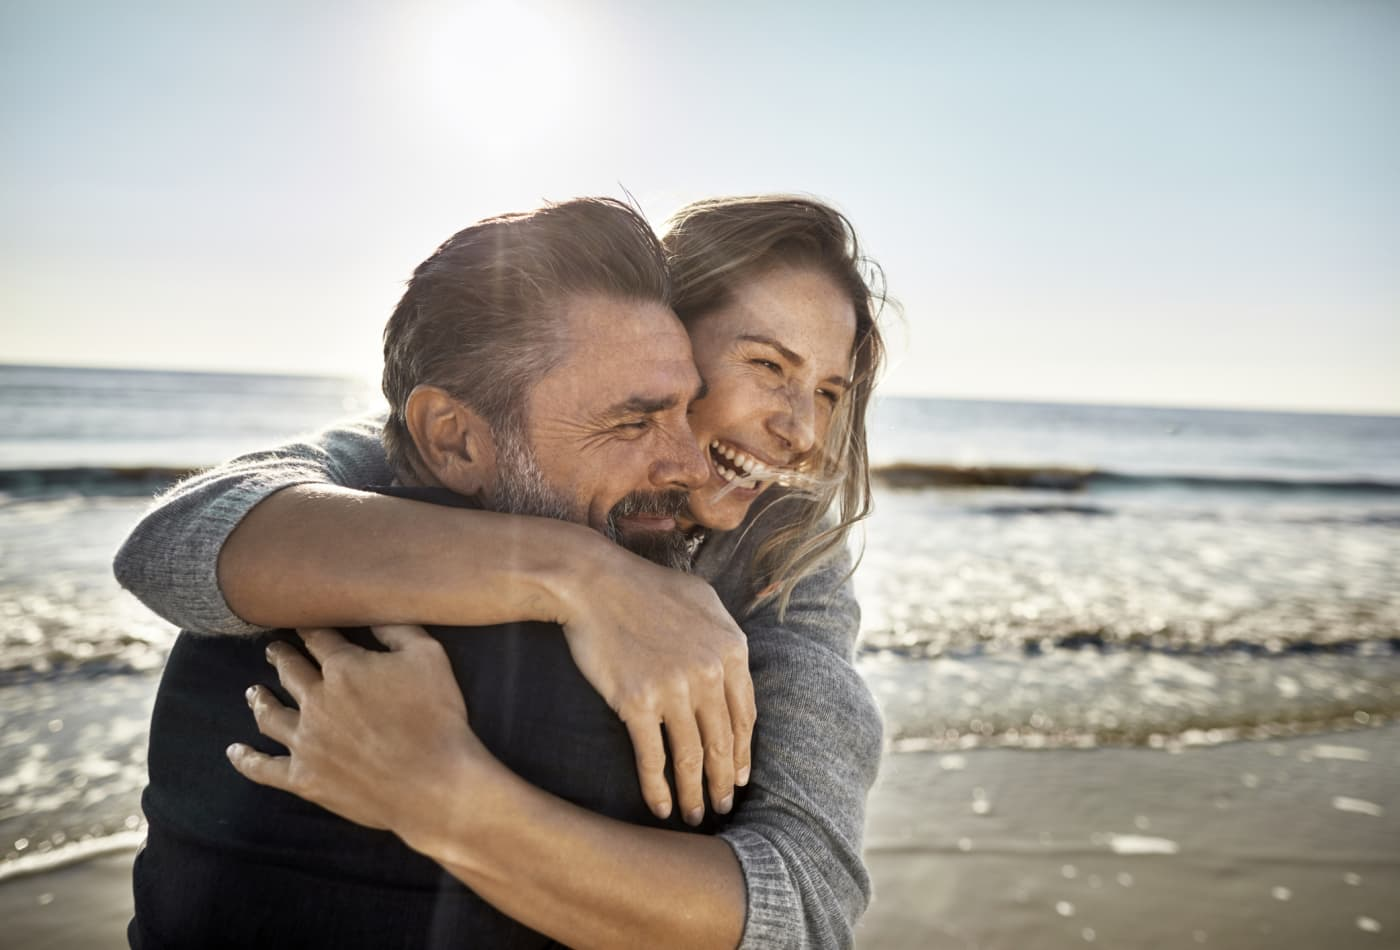 If you're saving for retirement and are in your 50s, it may be time to reassess your plan